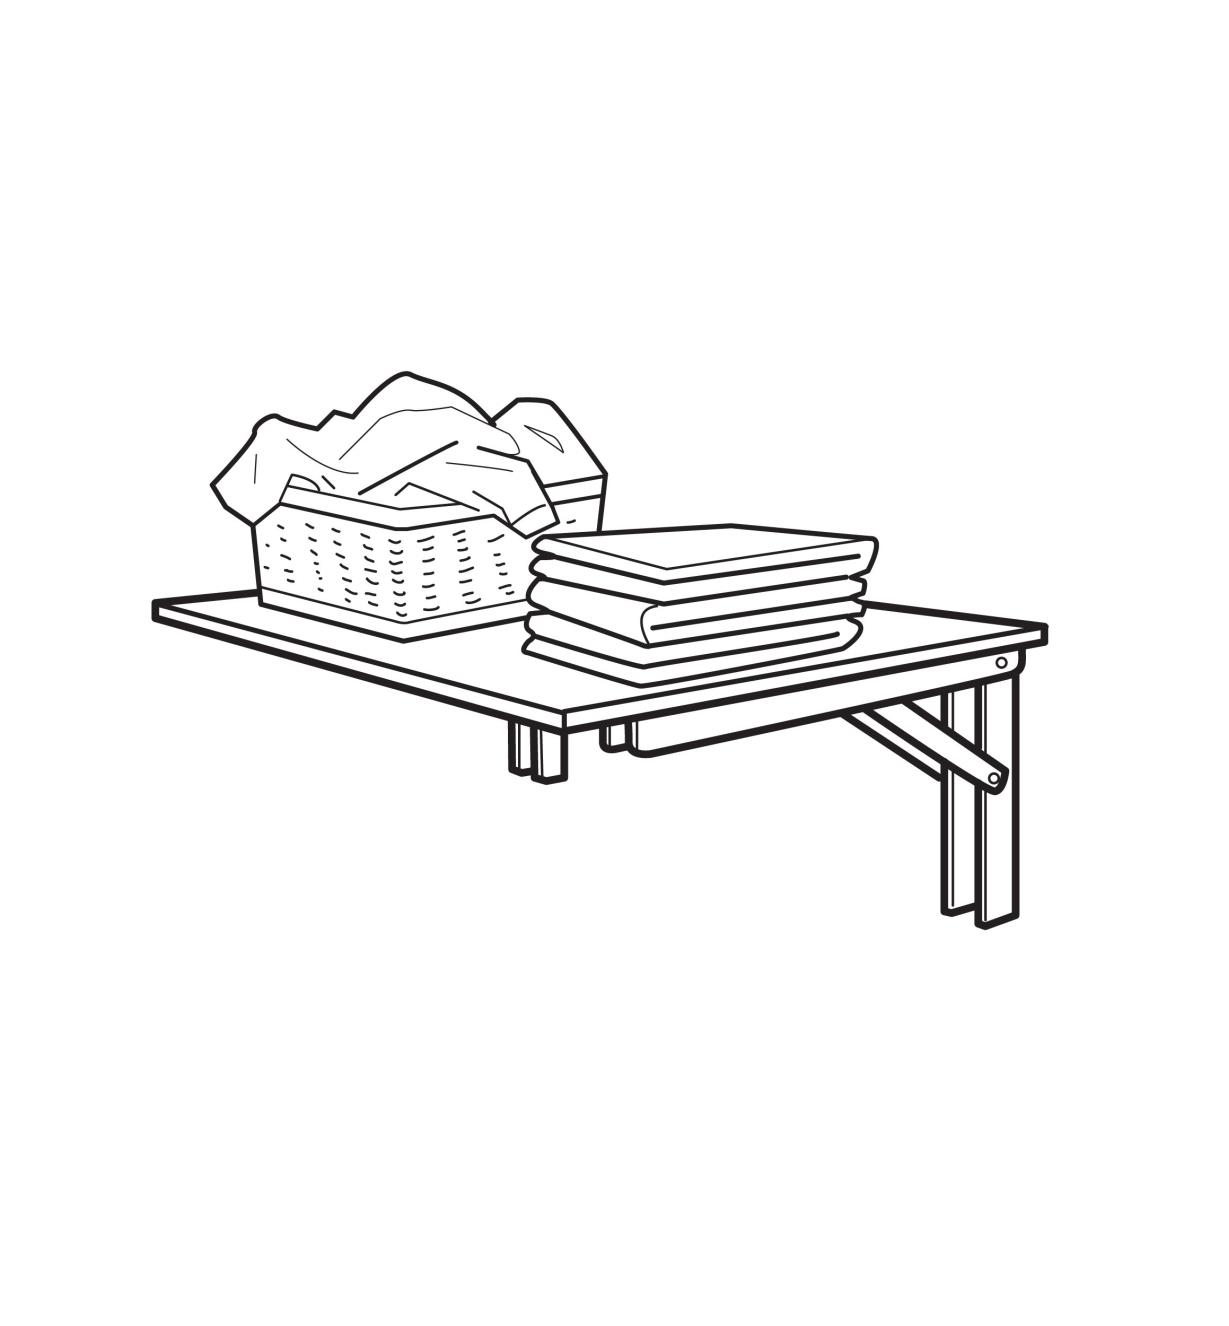 Illustrated example of fold-away table set at 90°, holding laundry